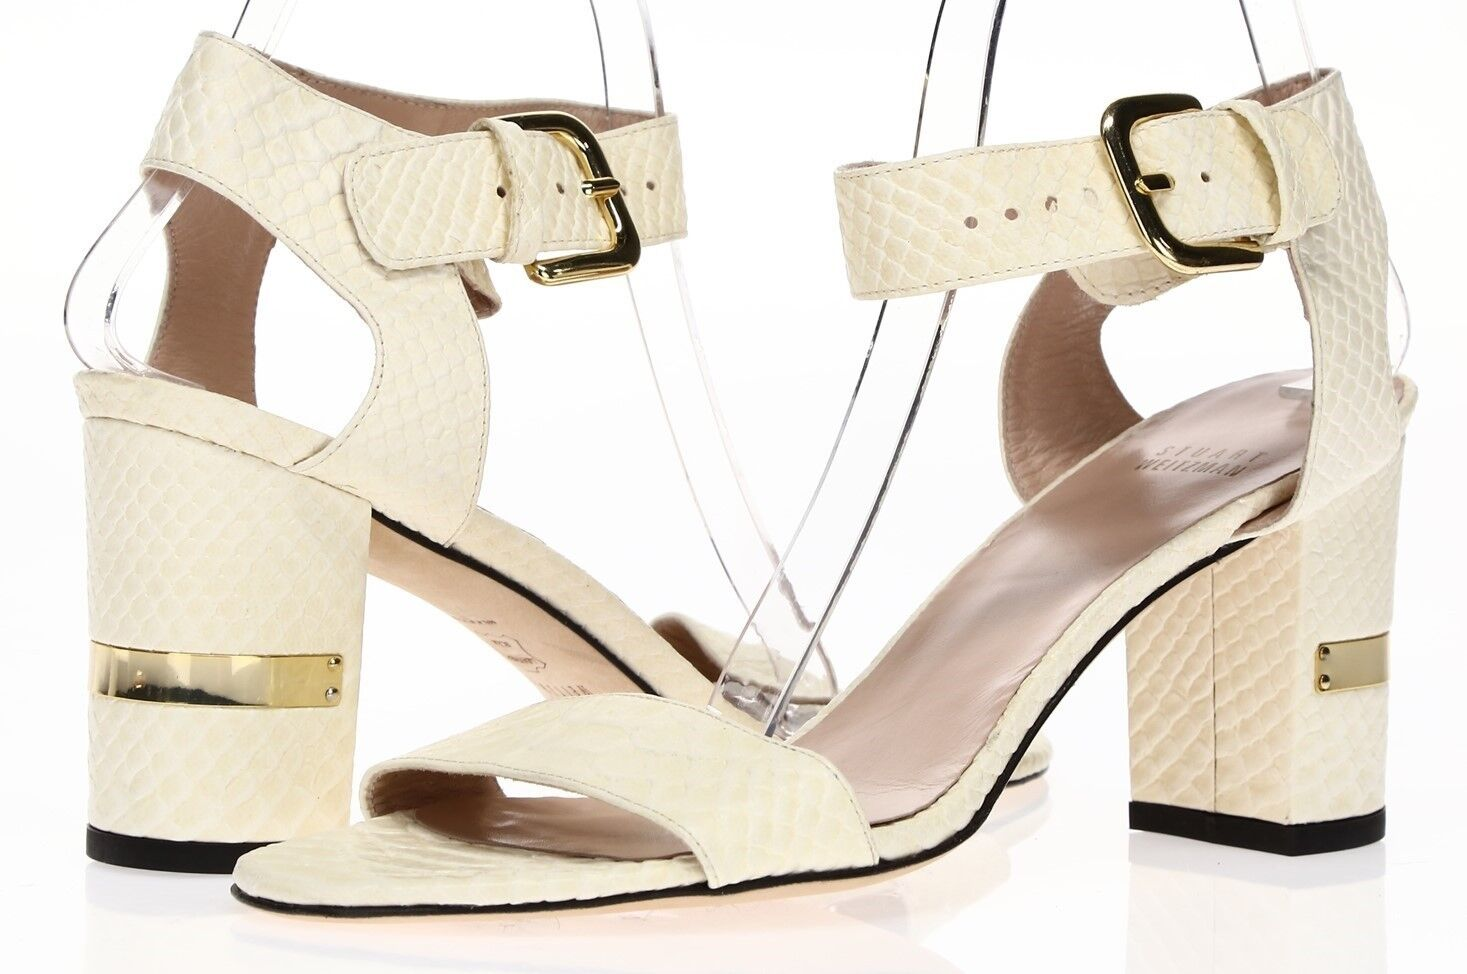 STUART WEITZMAN Donna Ivory Shake Print Leather Ankle Strap Sandals Sz 10 M